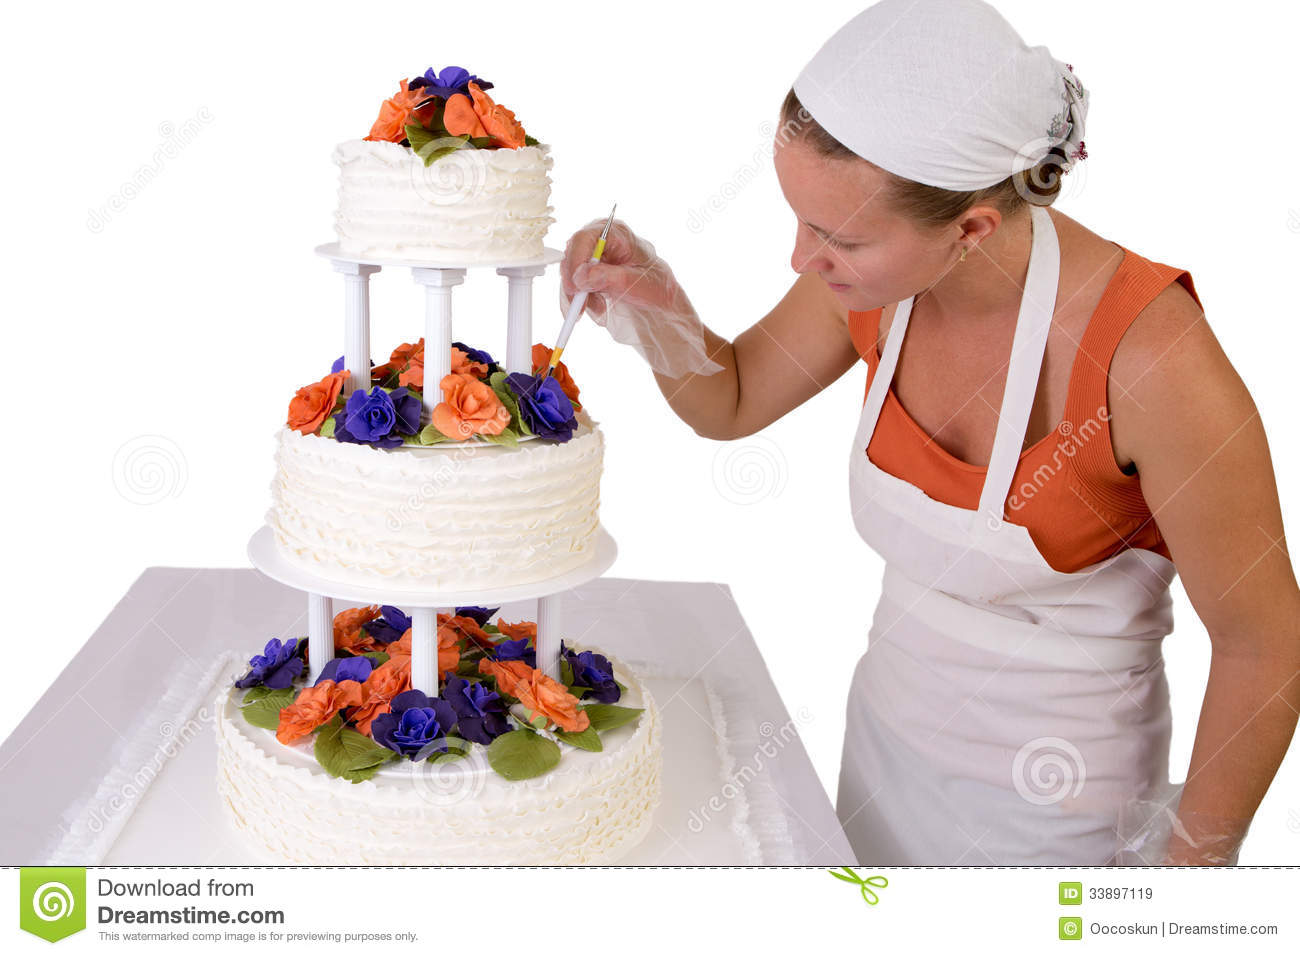 How Many Calories In Wedding Cake